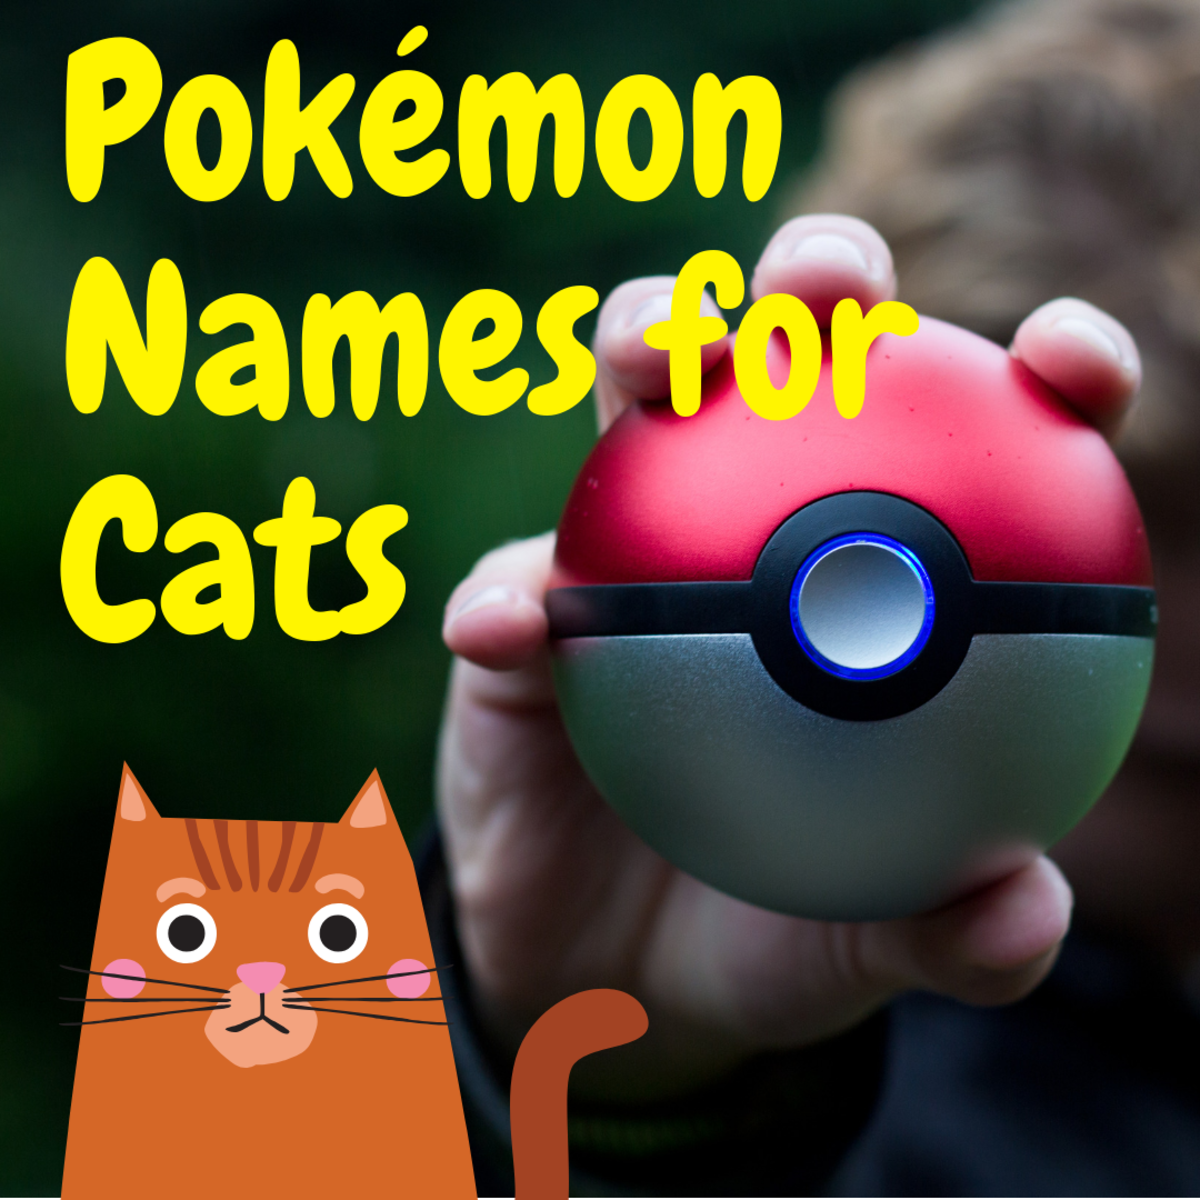 150 Pokémon Cat Names With Nicknames